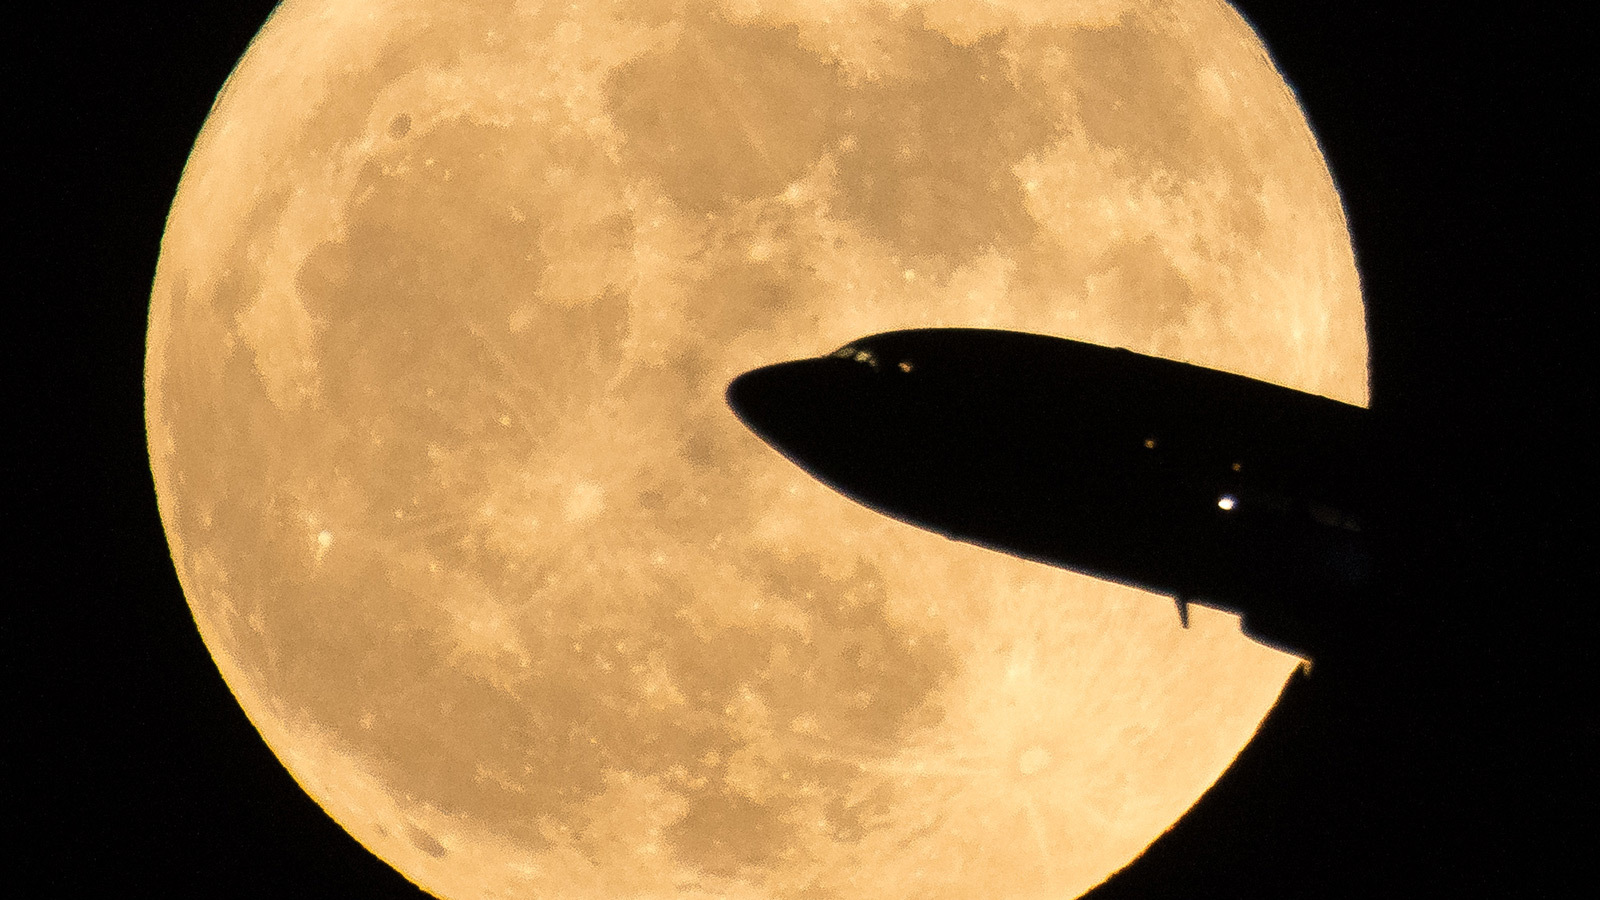 An aircraft taking off from Ronald Reagan National Airport is seen passing in front of the full moon as it rises, Sunday, Dec. 3, 2017 in Washington. (Credit: NASA/Bill Ingalls